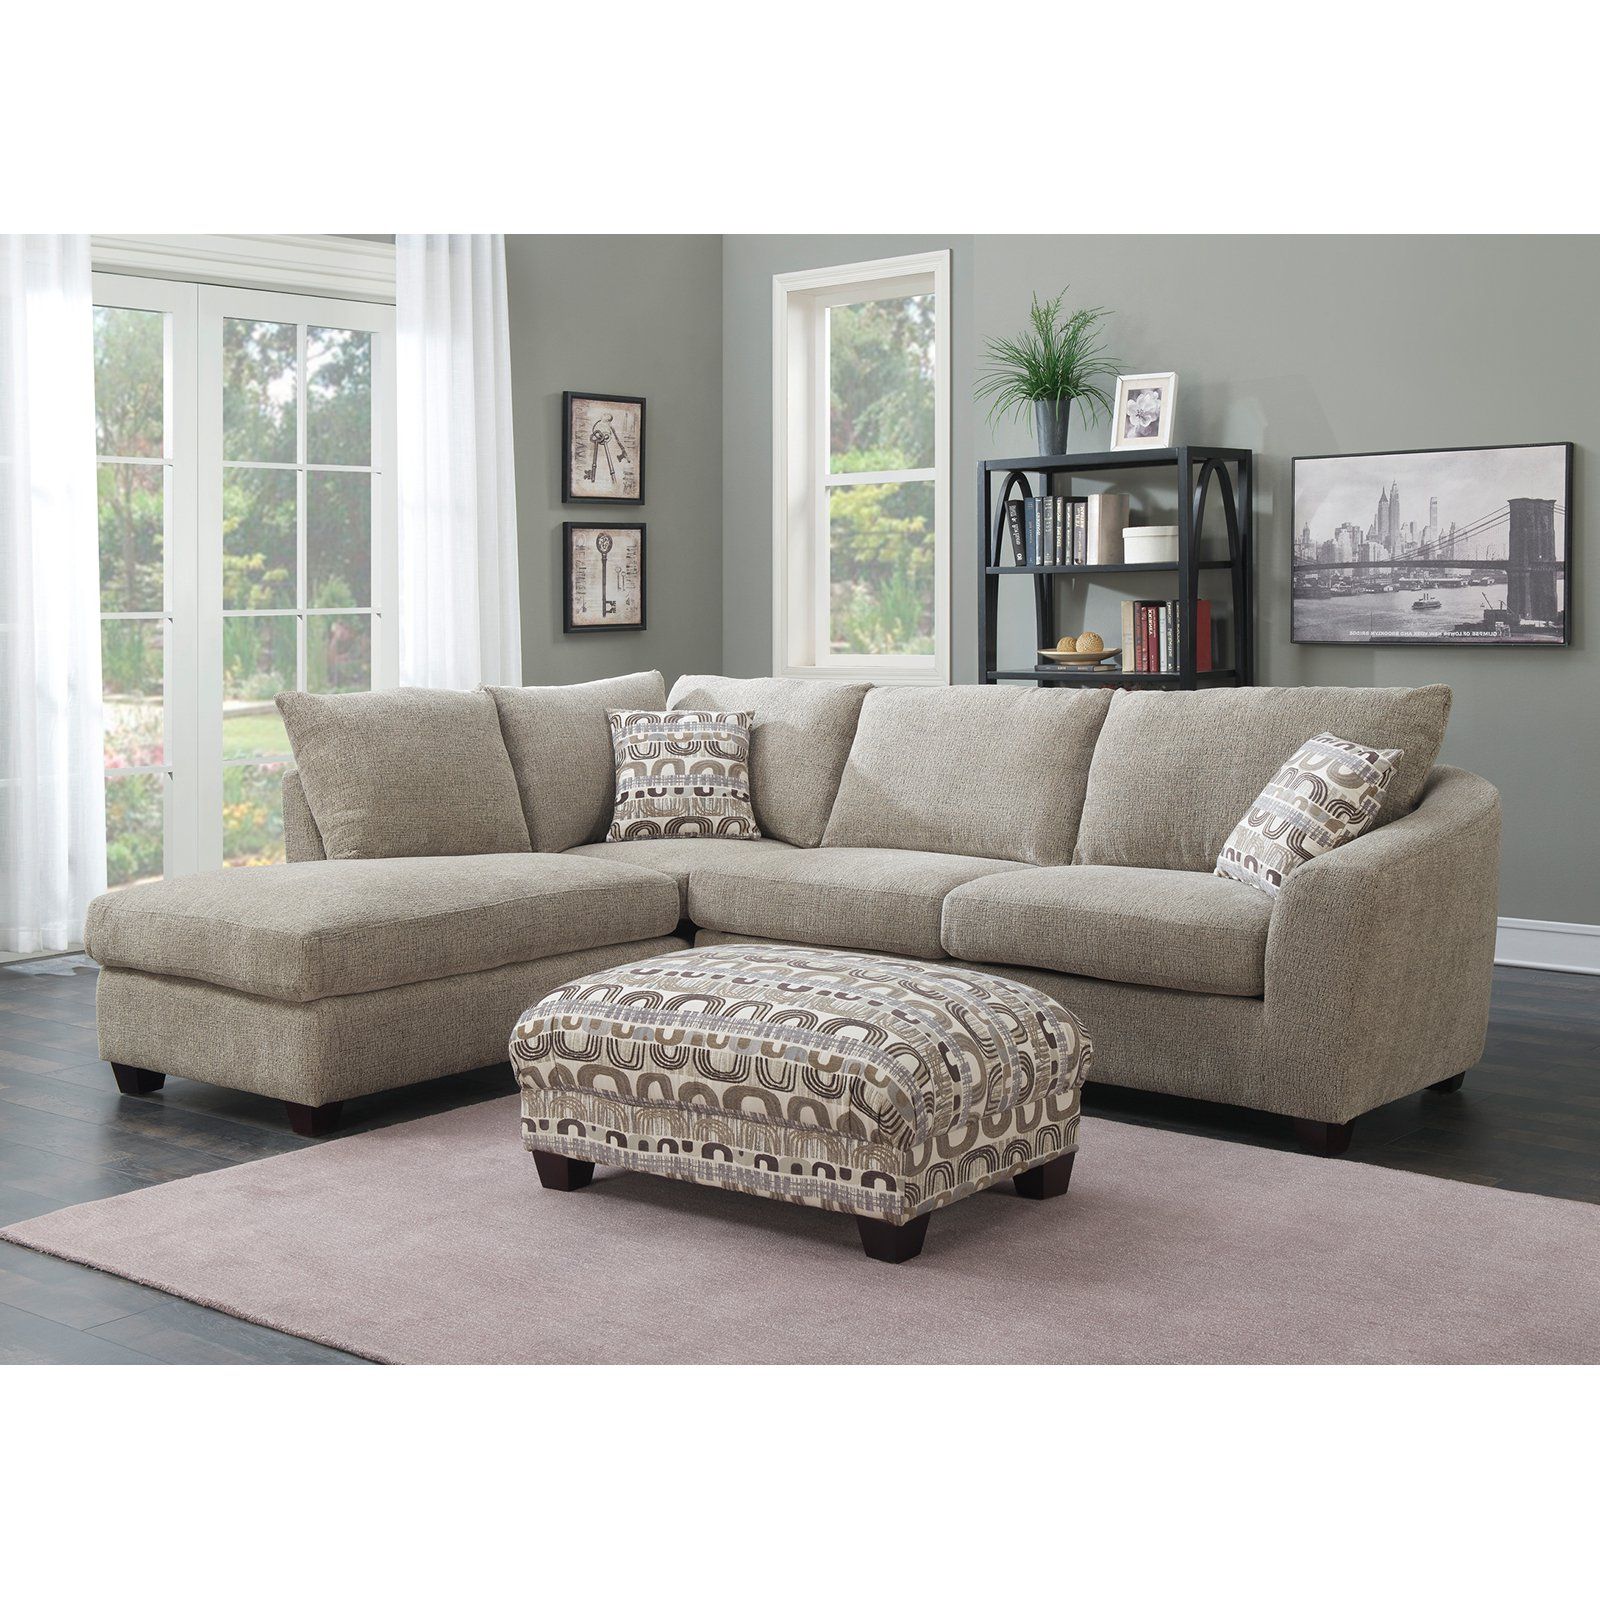 Popular 2 Piece Sectional With Chaise – Tidex Throughout Avery 2 Piece Sectionals With Laf Armless Chaise (Gallery 4 of 20)